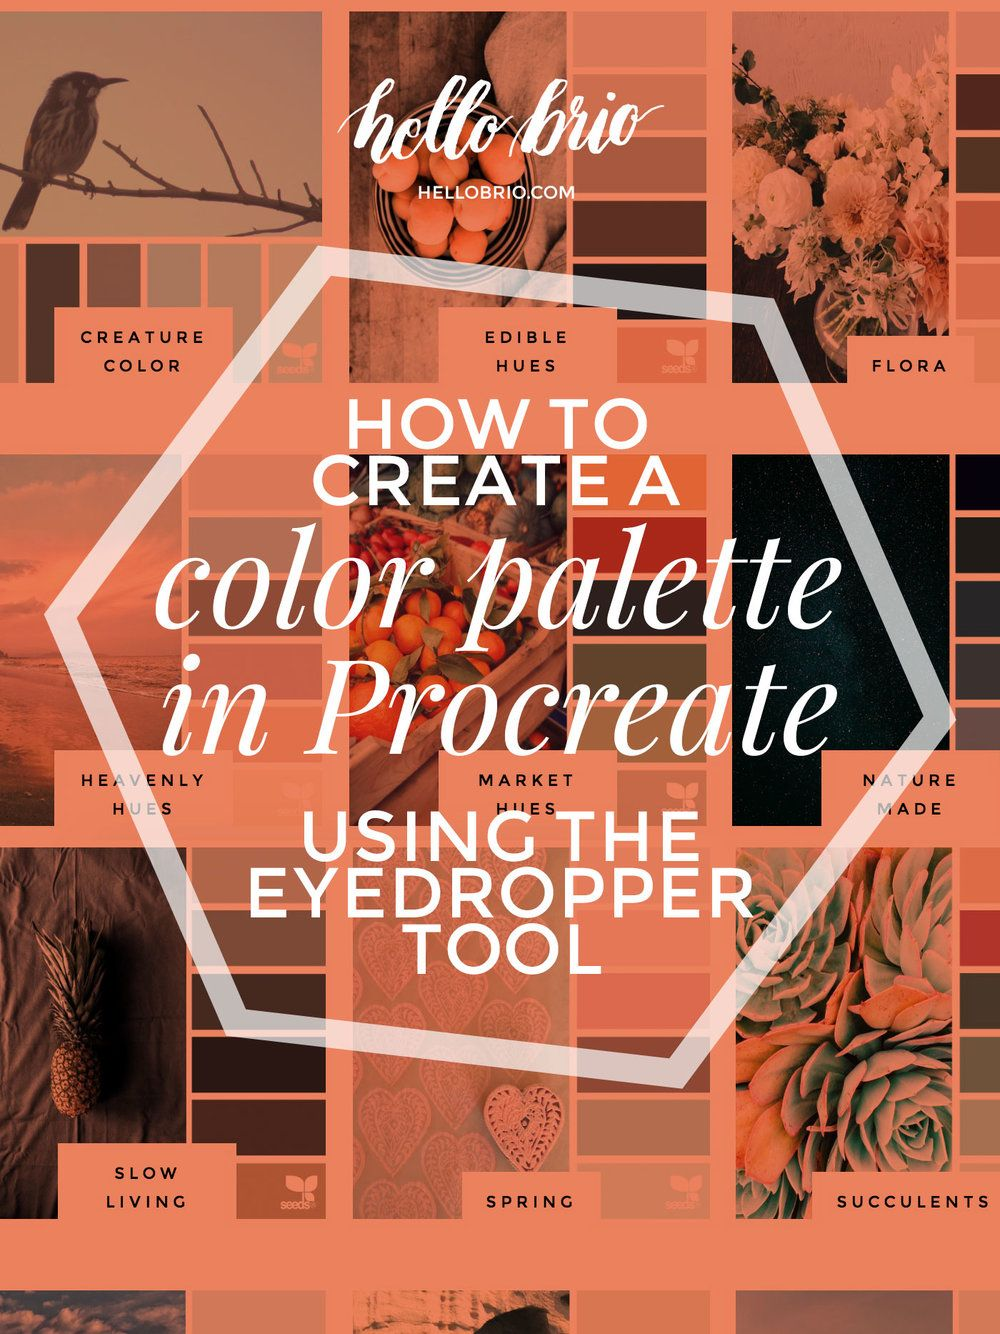 how to create a color palette in procreate using the eyedropper tool